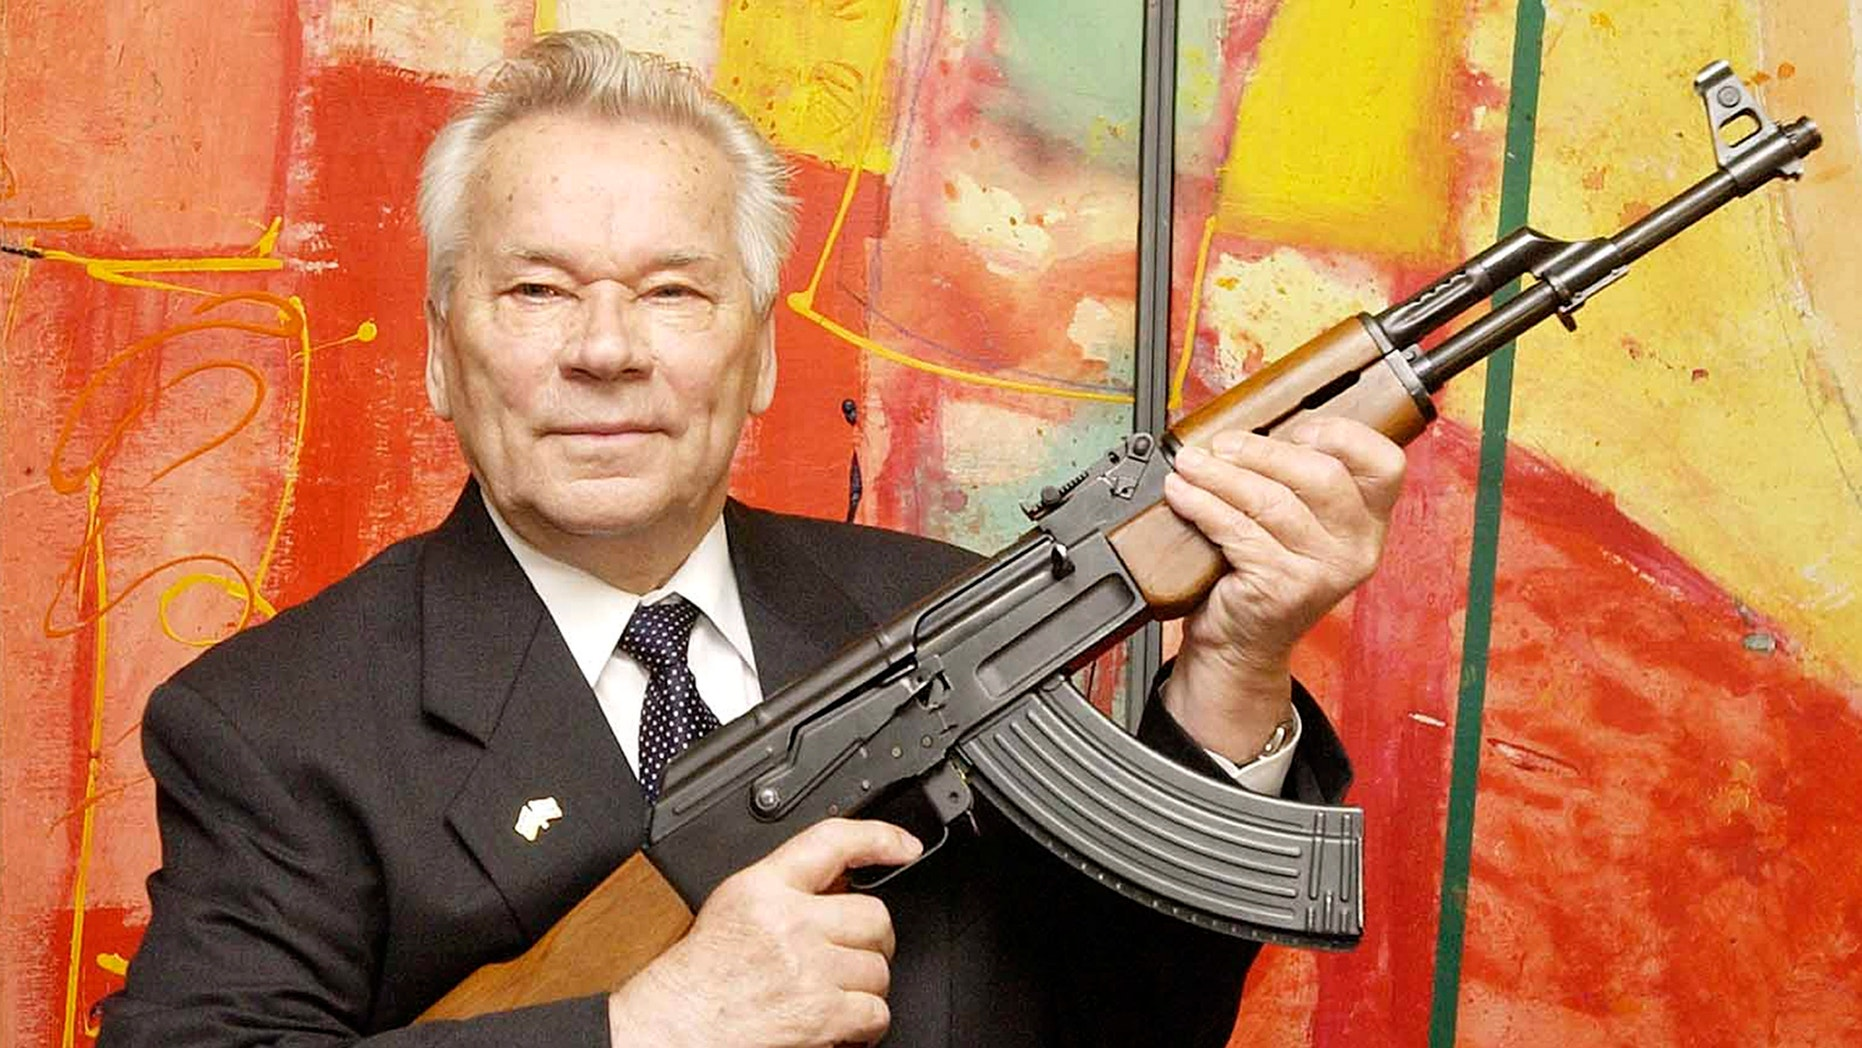 """July 26, 2002 - FILE photo of Russian weapon designer Mikhail Kalashnikov presenting his legendary assault rifle to the media while opening the exhibition """"Kalashnikov - legend and curse of a weapon"""" at a weapons museum in Suhl, Germany. Kalashnikov died at the age of 94."""